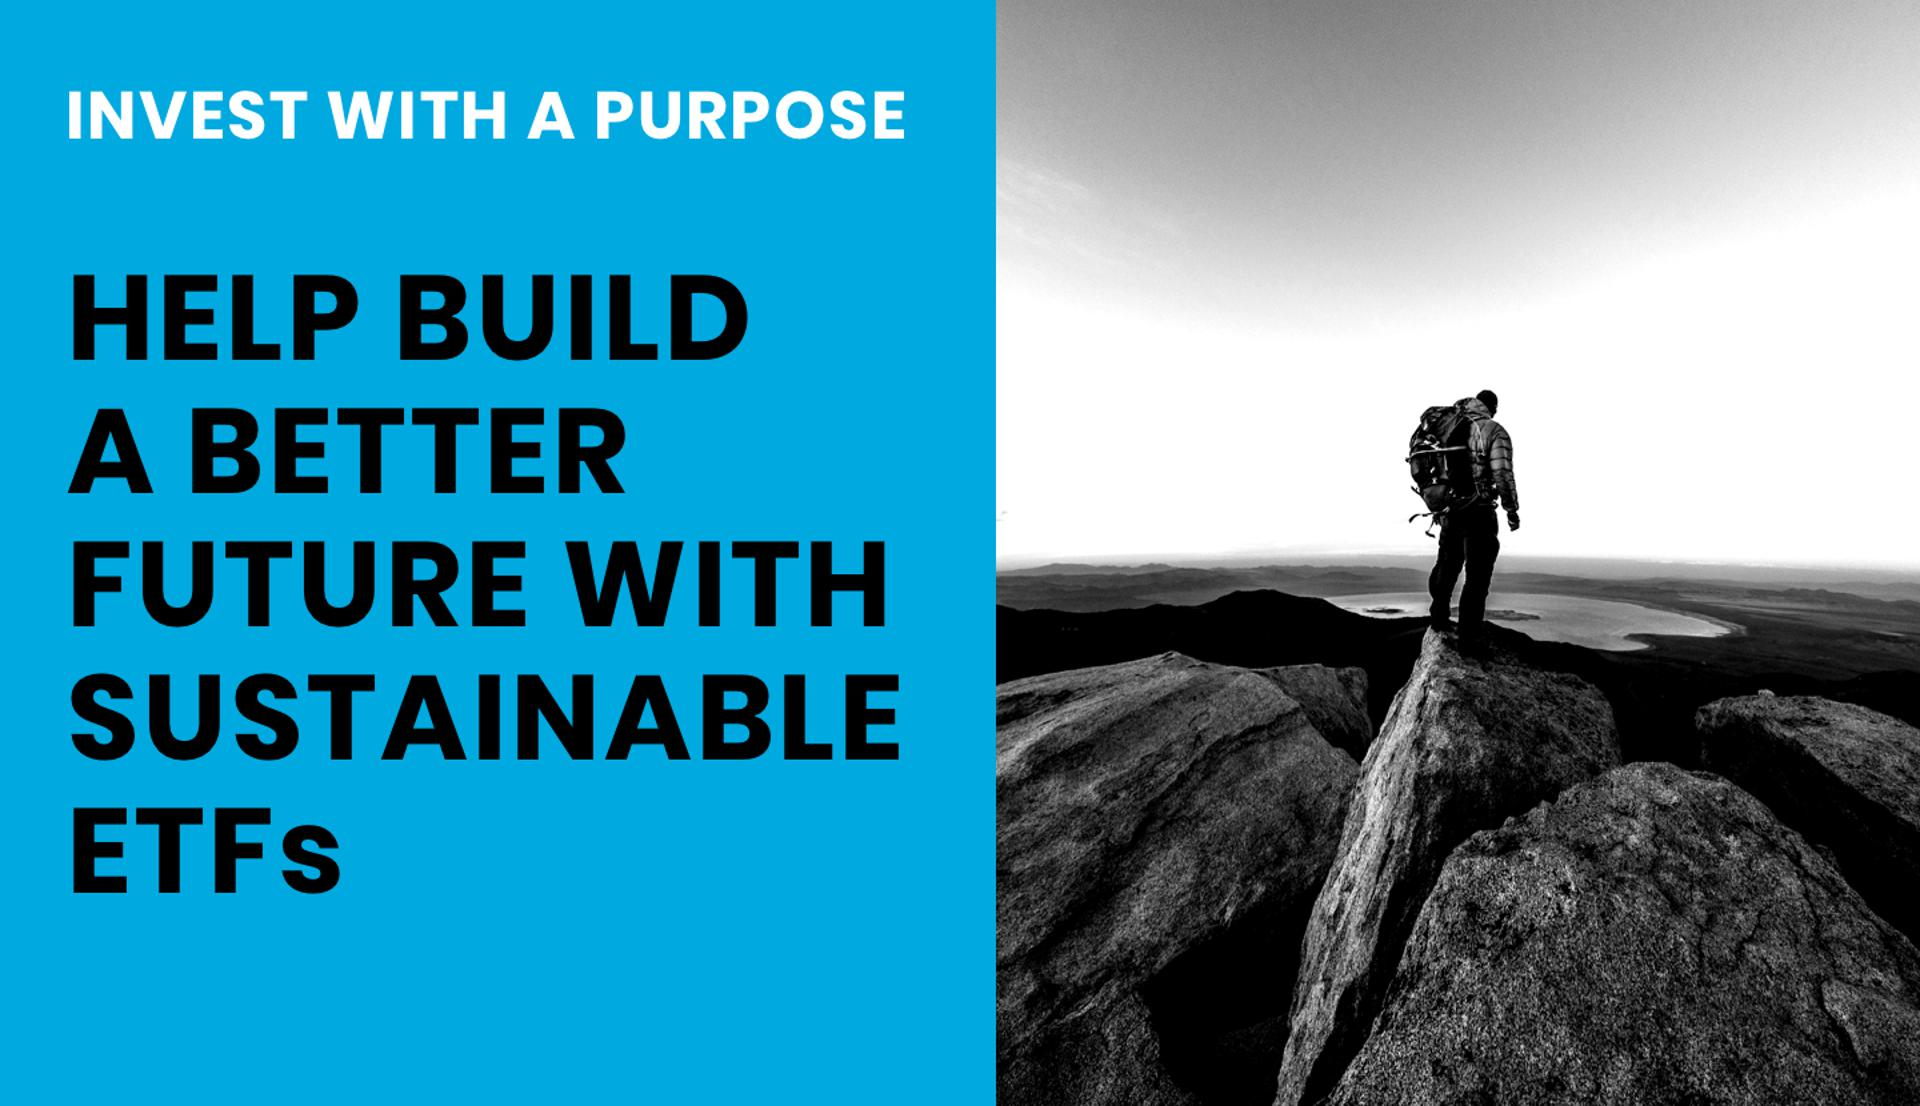 Invest With A Purpose: Help Build A Better Future With Sustainable ETFs